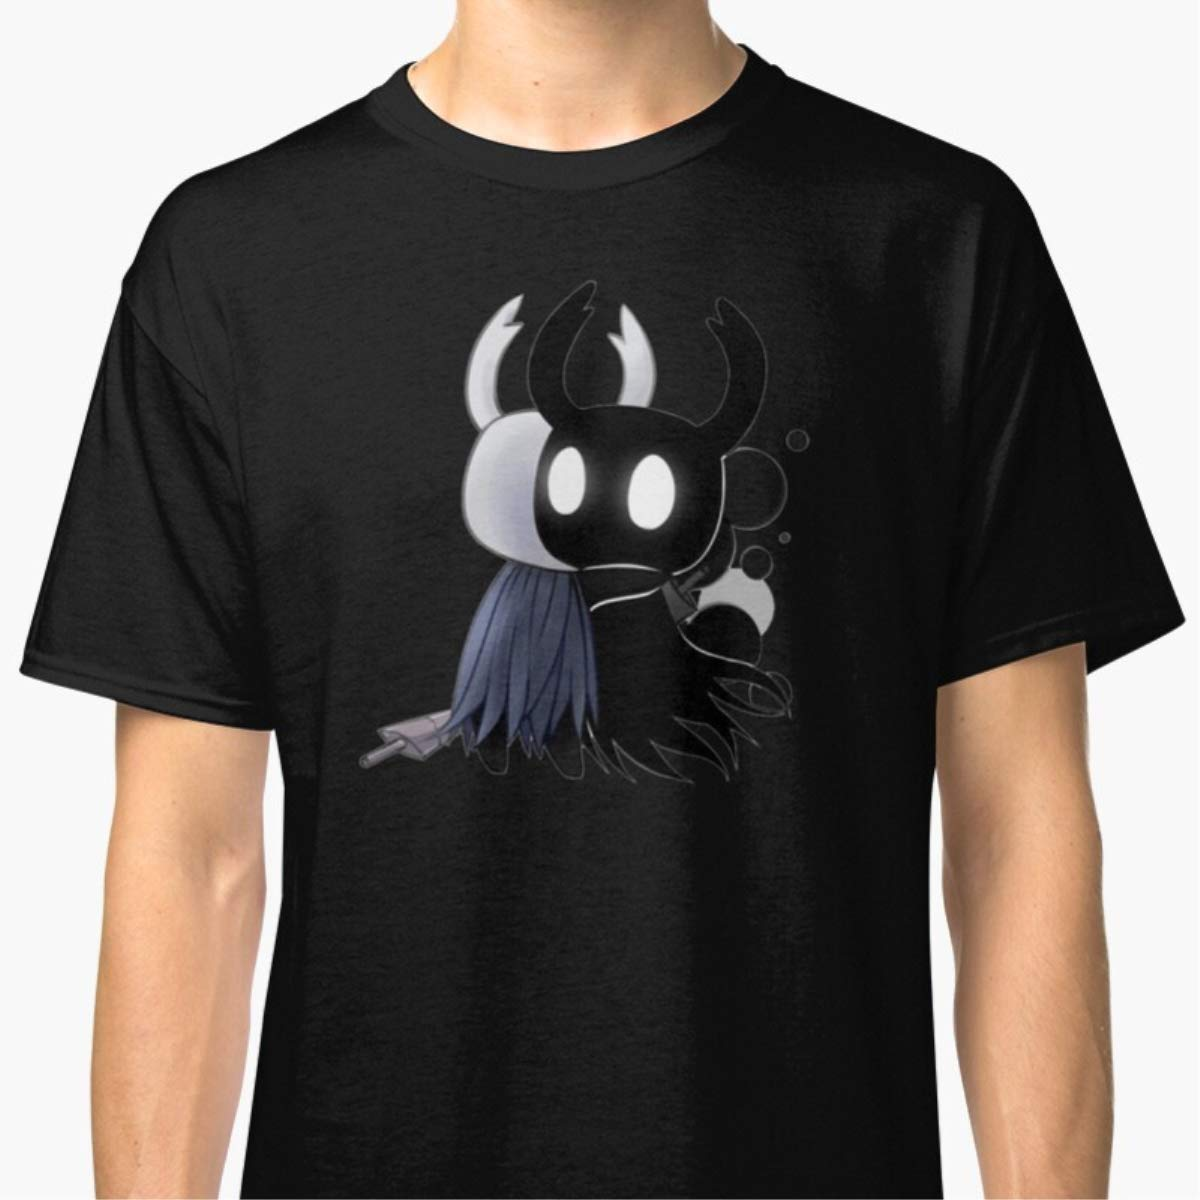 Unisex T-Shirt Hollow Knight Shirts For Men Women Perfect Fathers Day Friends